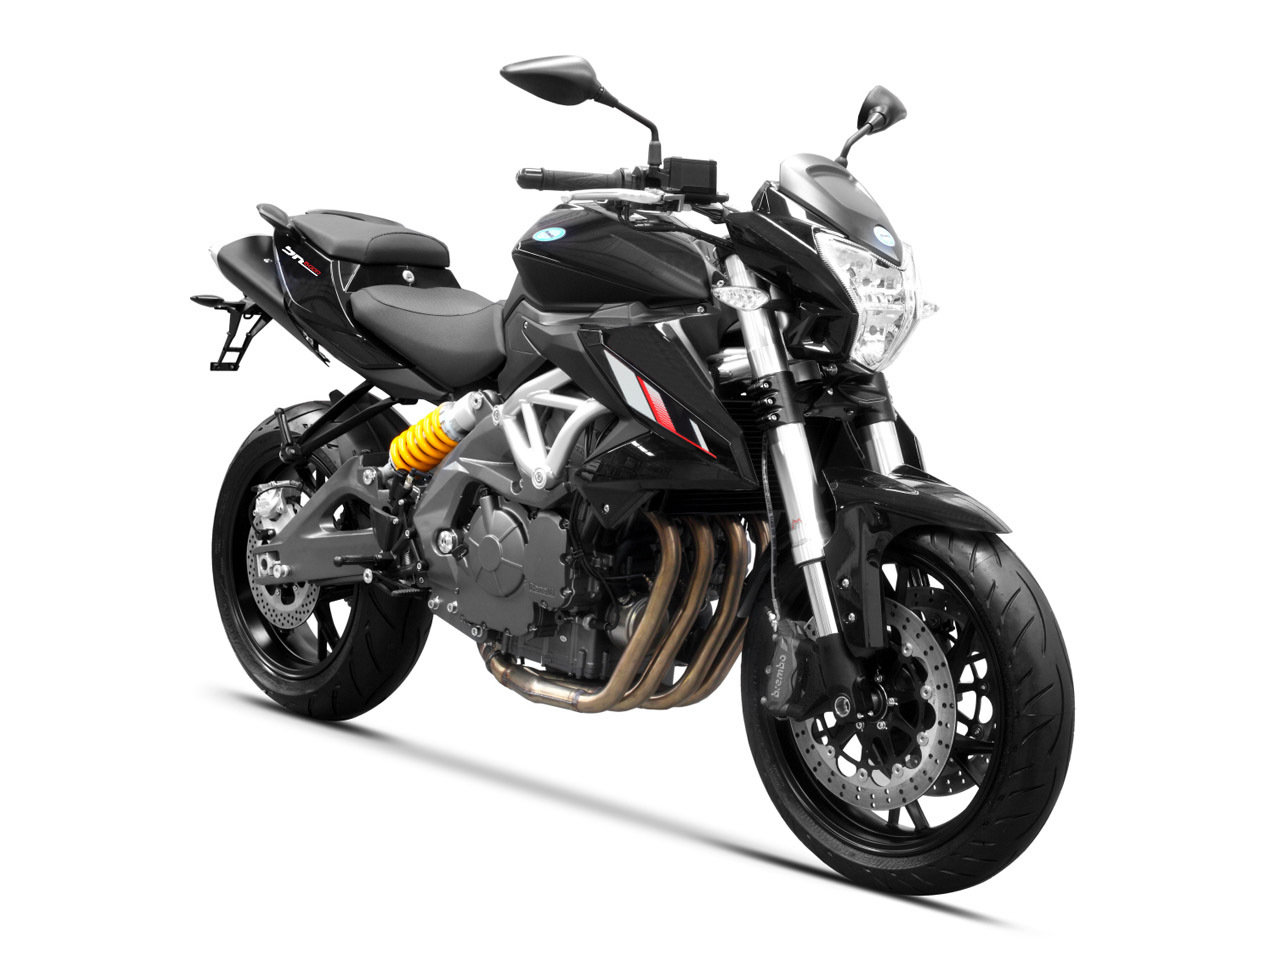 2014 Benelli BN600I Review - Top Speed